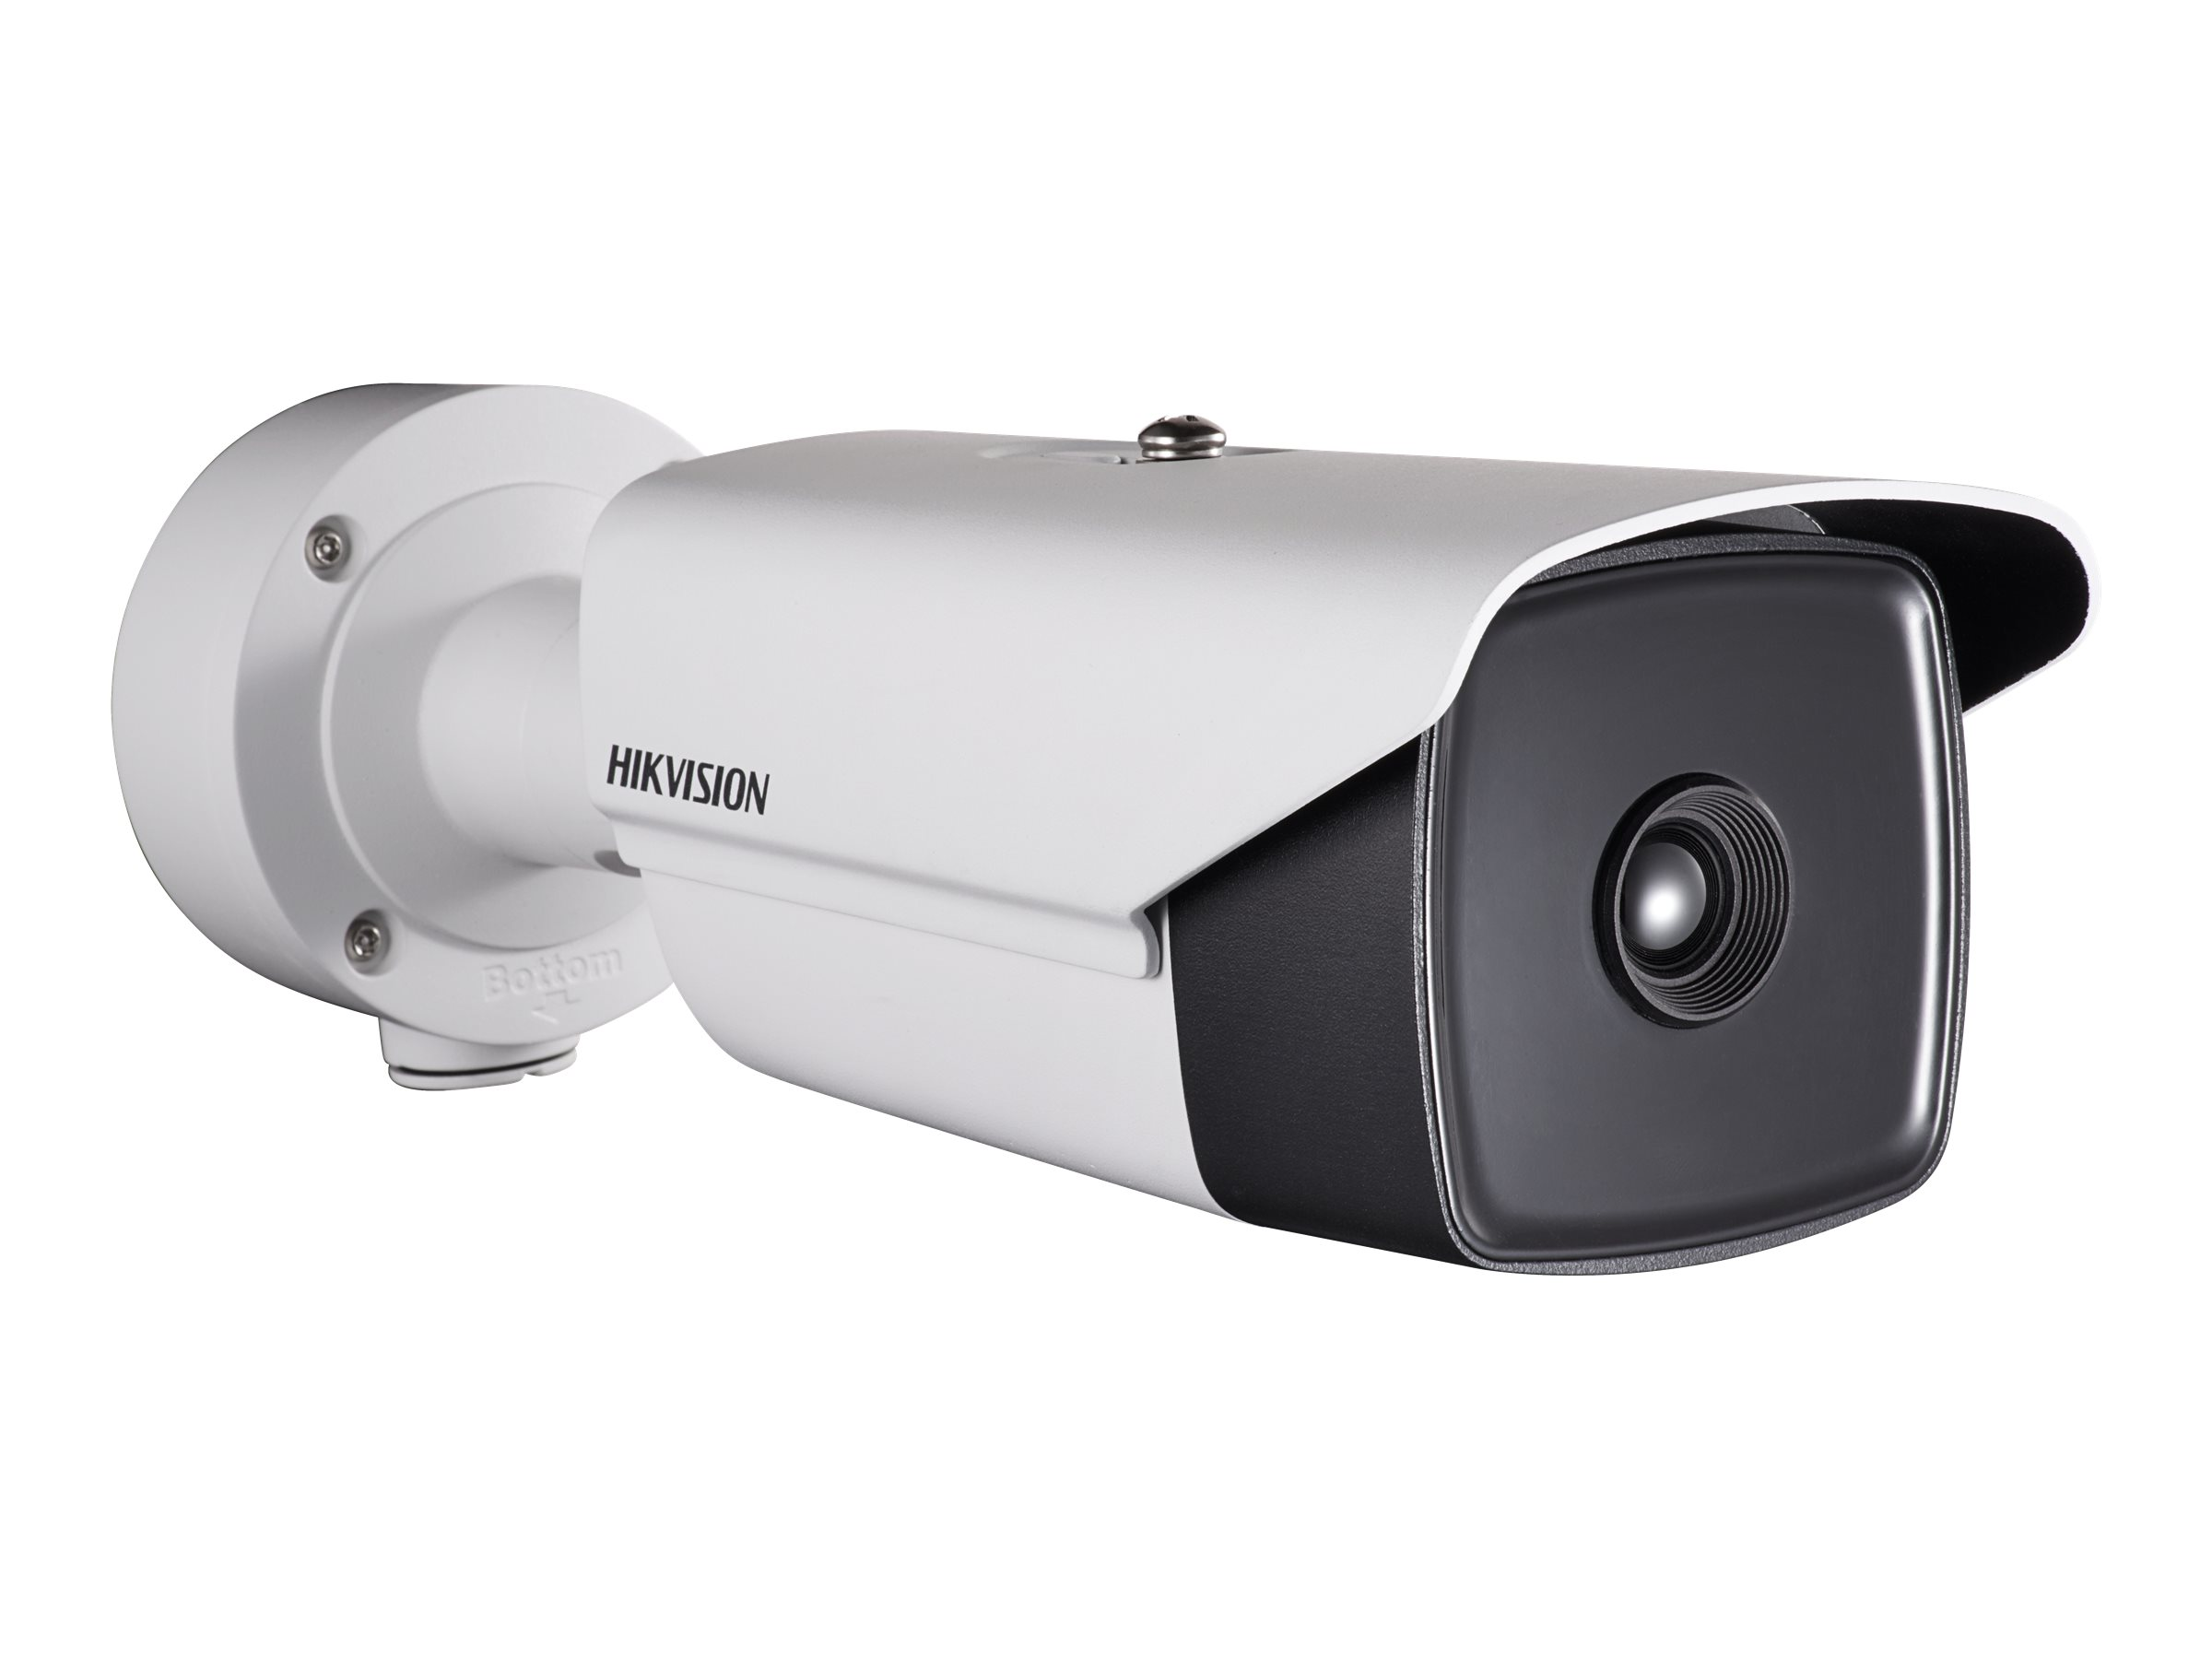 Hikvision DeepinView Thermal Network Bullet Camera DS-2TD2166-15/V1 - thermal network camera